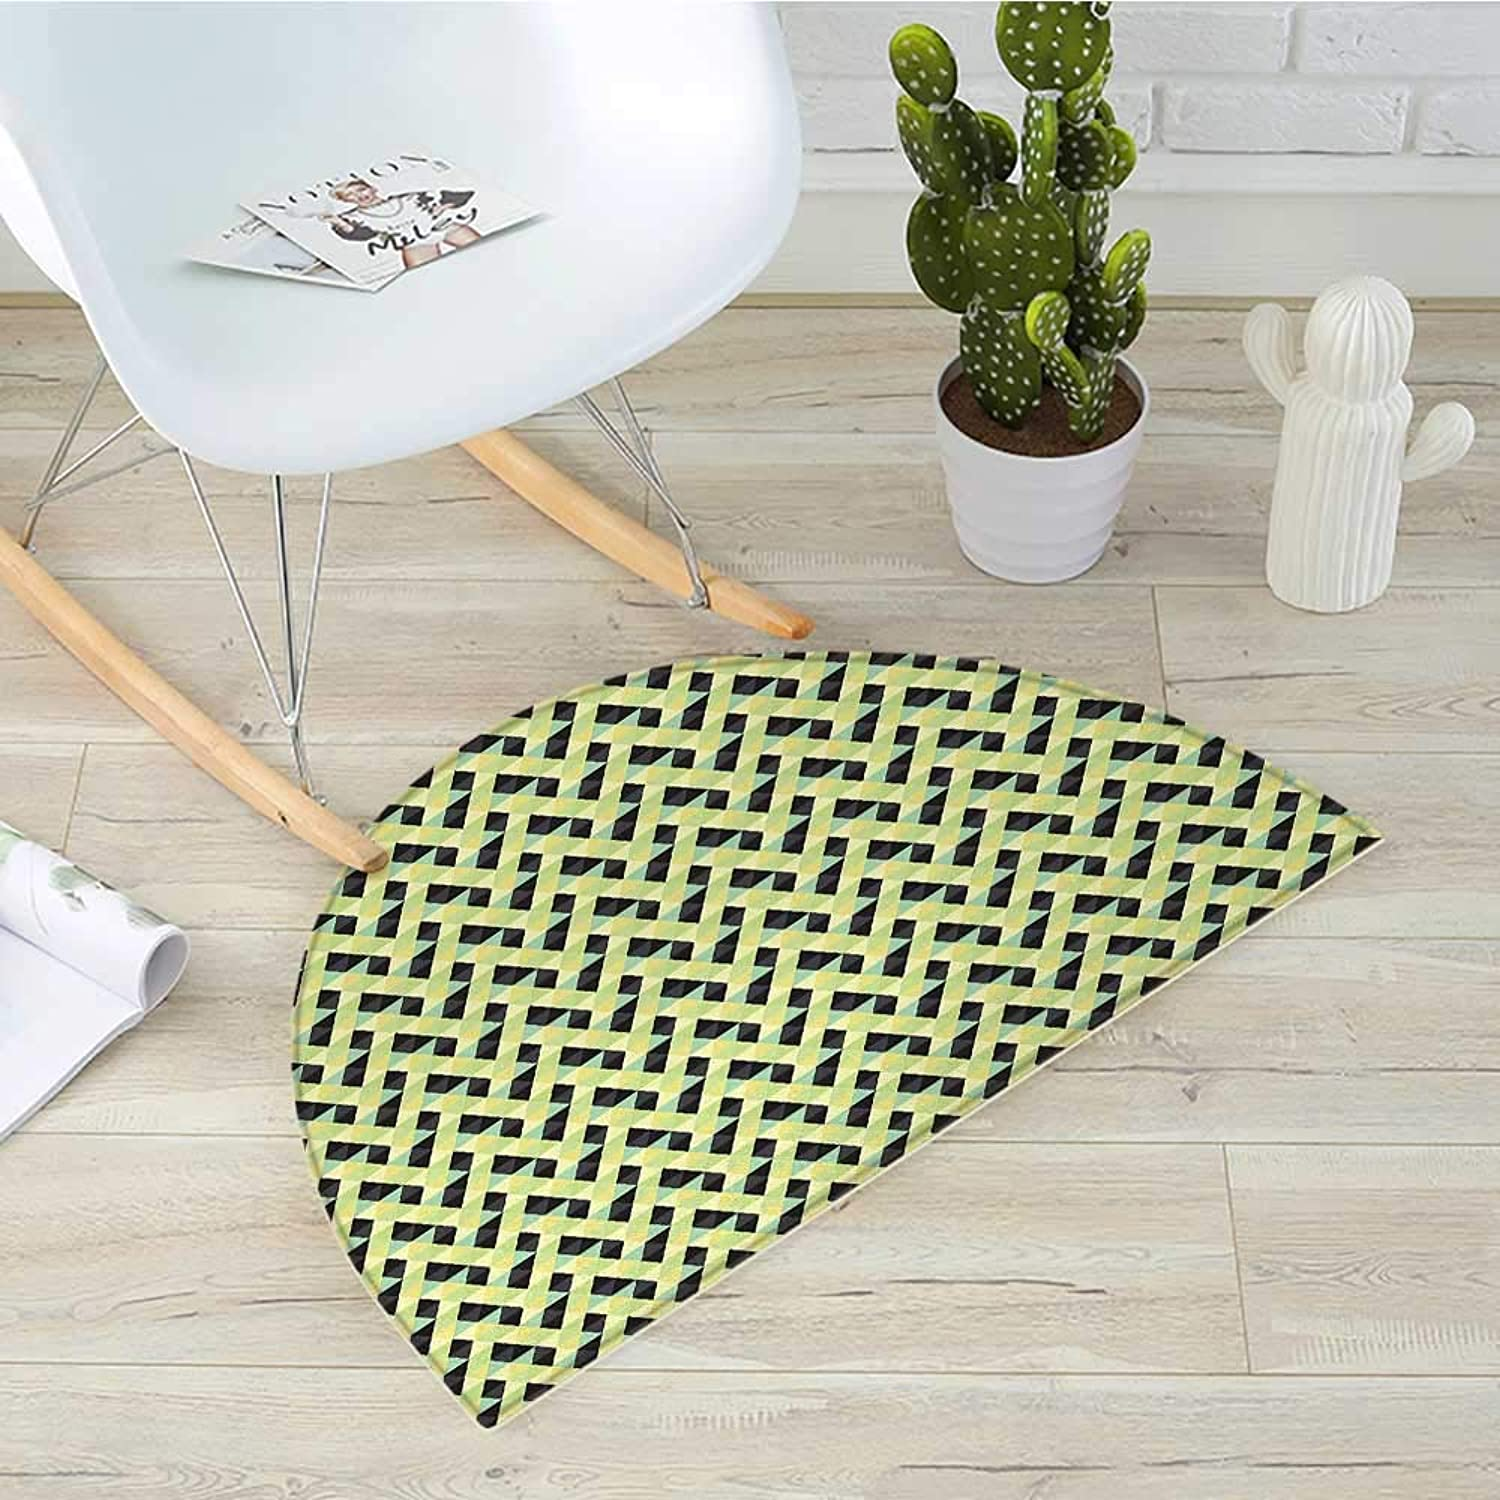 Geometric Half Round Door mats Triangles and Rhombuses with Many colors Abstract Grid Style Retro Illustration Bathroom Mat H 39.3  xD 59  Multicolor